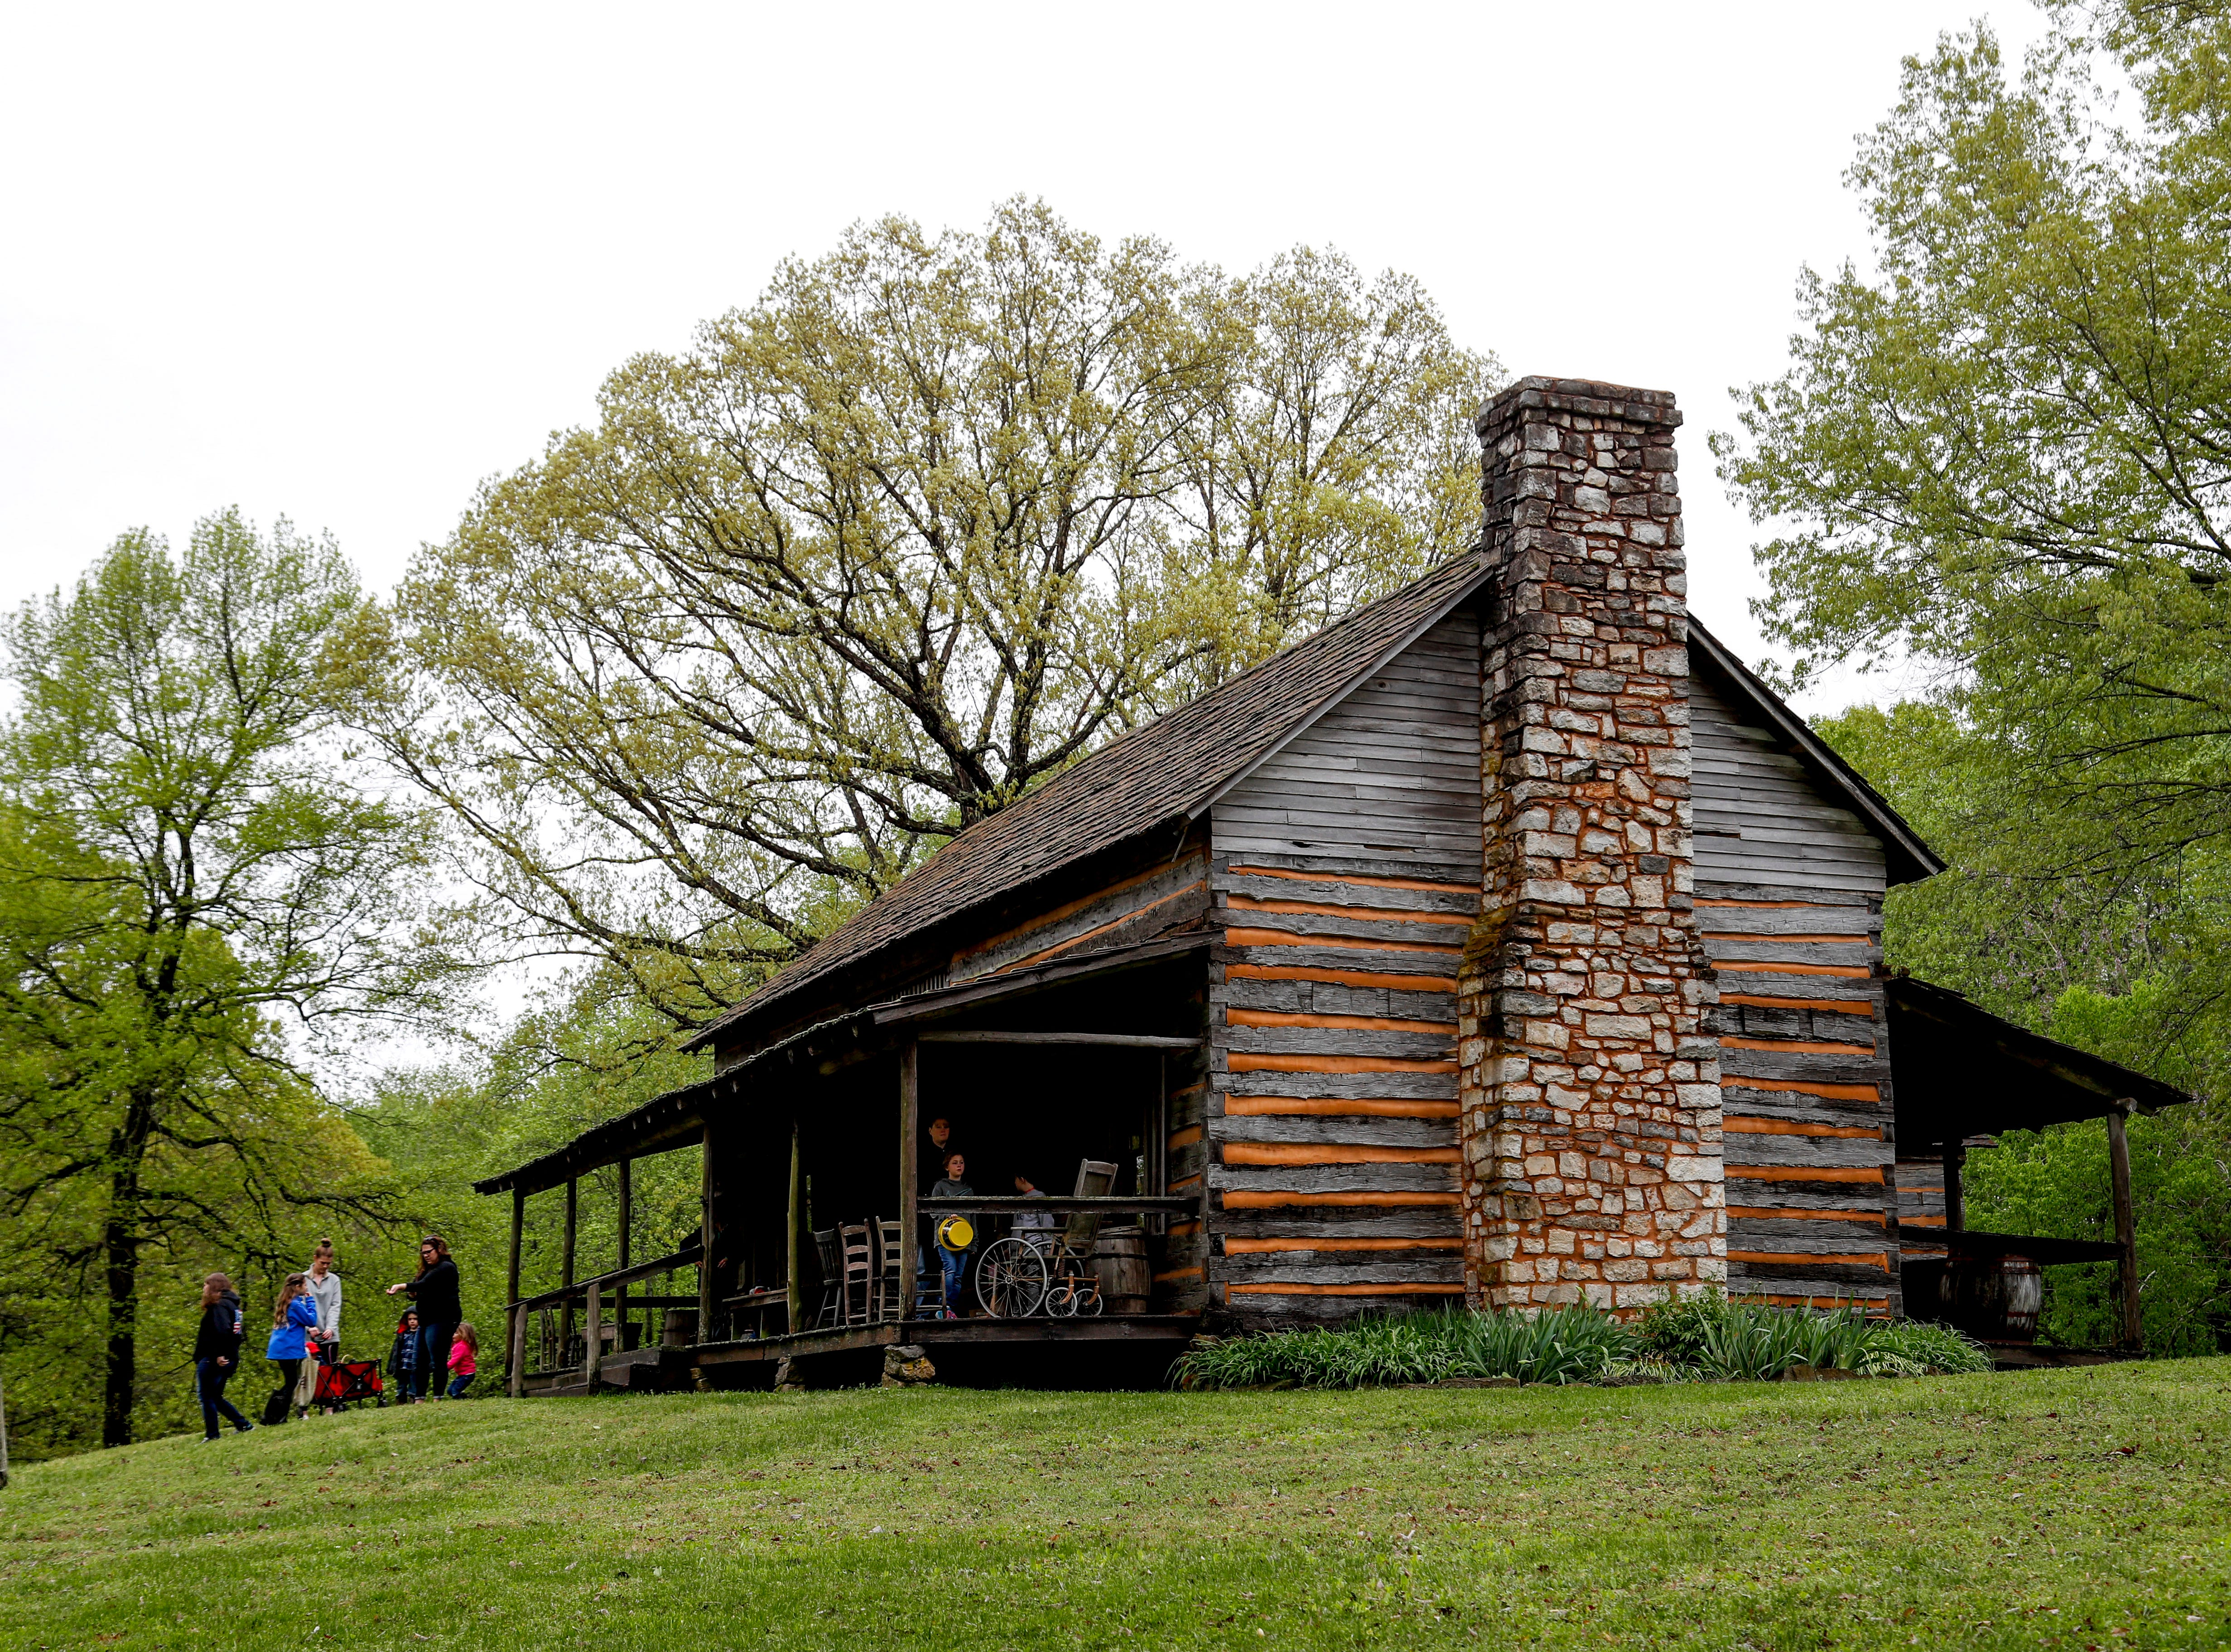 A family walks up the hills alongside an old preserved building at the annual Easter egg hunts at Historic Collinsville in Clarksville, Tenn., on Saturday, April 20, 2019.